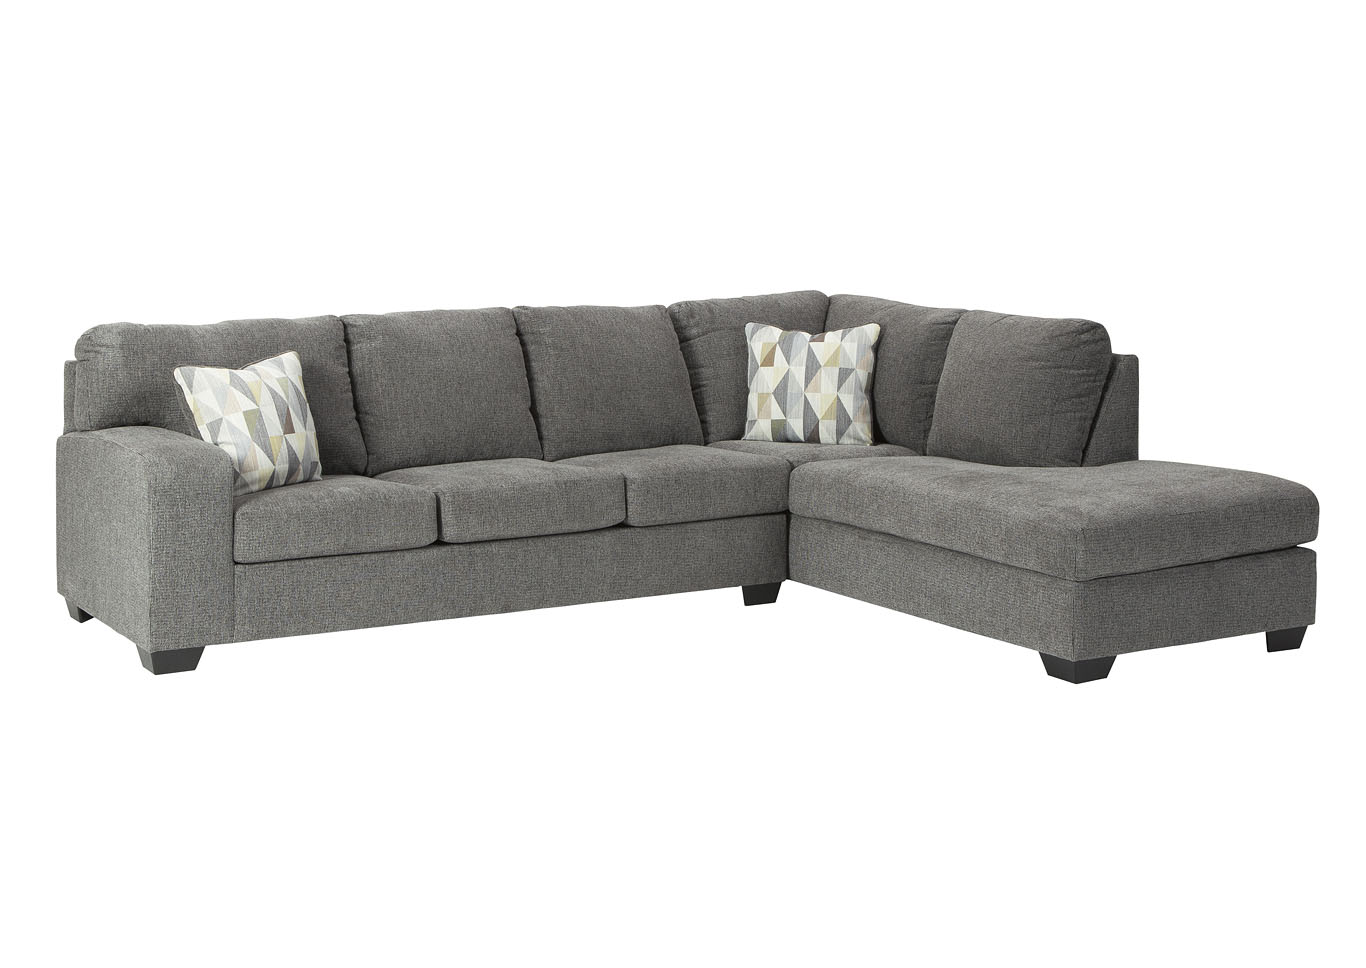 Dalhart Charcoal Right-Arm Facing Sofa Chaise,Benchcraft